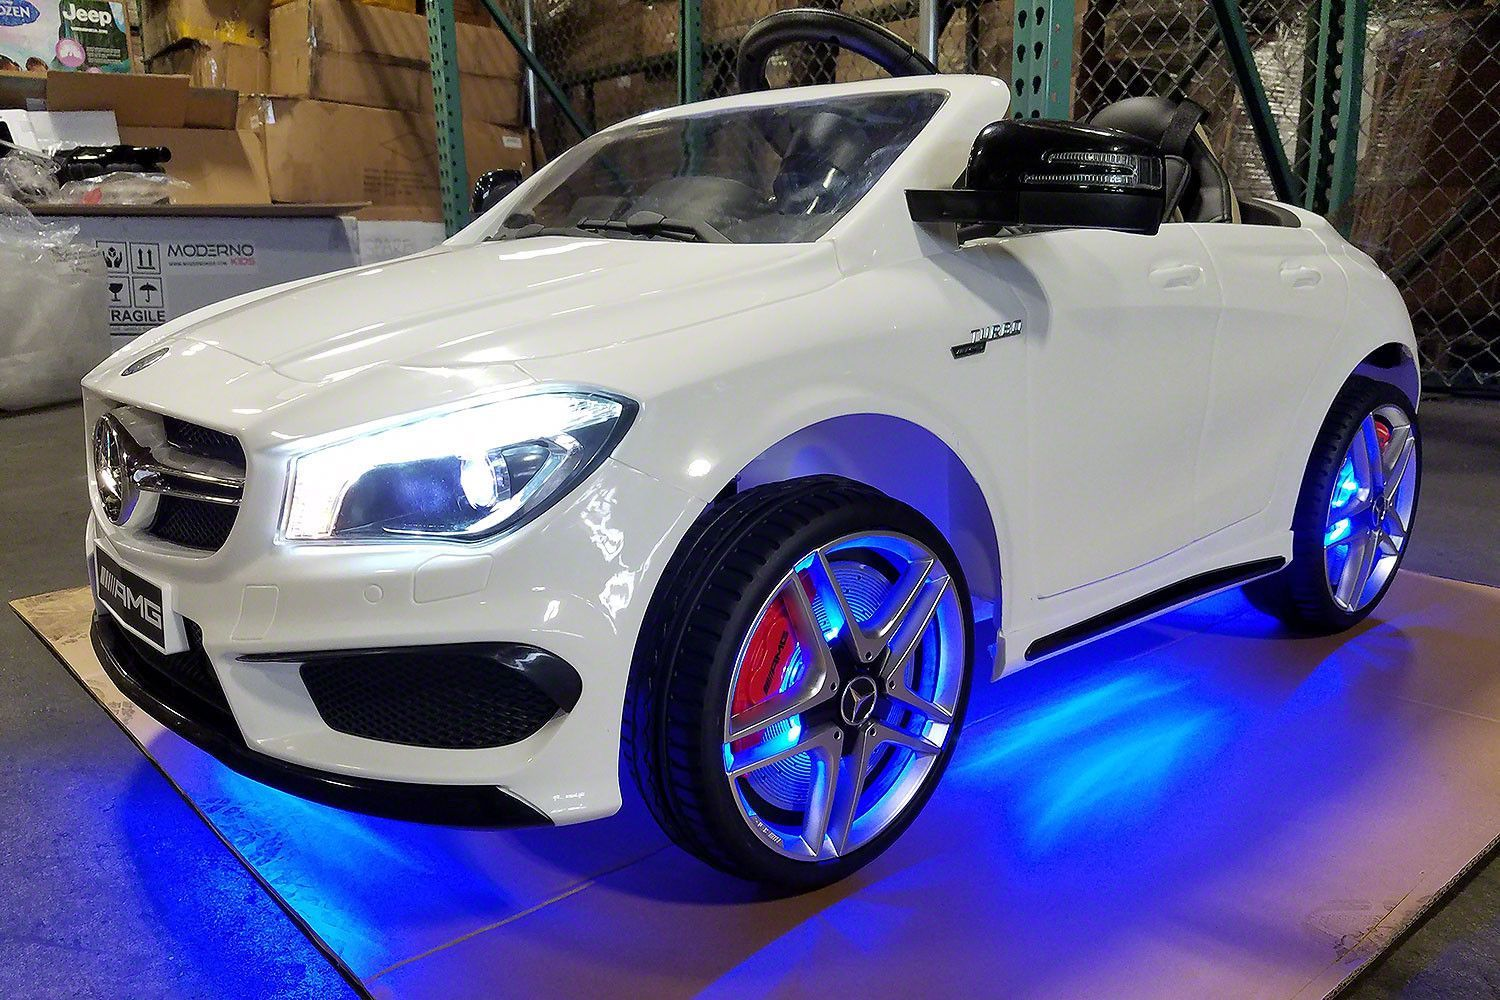 Mercedes benz cla45 kids ride on car toy mp3 usb 12v bat for Power wheel mercedes benz